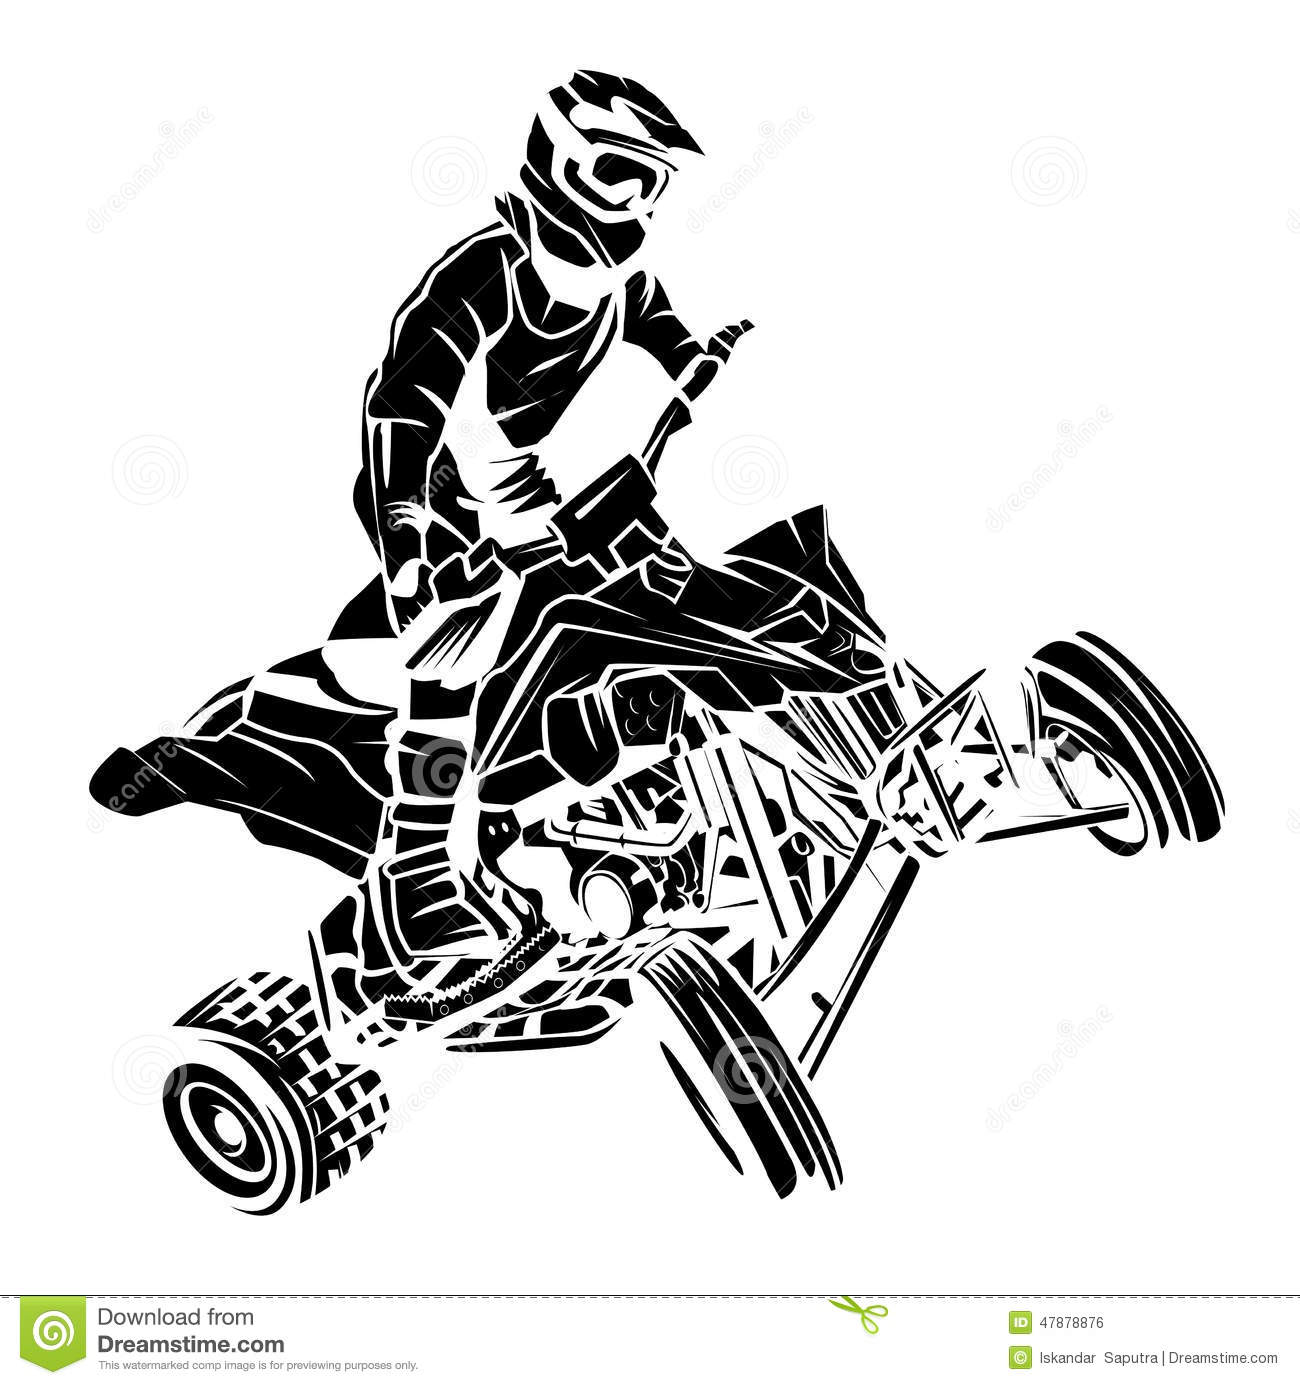 Stock Illustration Atv Moto Rider Eps Illustration Design Image47878876 besides Coloriage Quad moreover Kinderpagina together with Boats Shipping 013 0185 as well e6 b1 bd e8 bd a6 e7 ae 80 e7 ac 94 e7 94 bb e5 b0 8f e6 b1 bd e8 bd a6 e5 a4 a7 e5 85 a8. on atv coloring pages